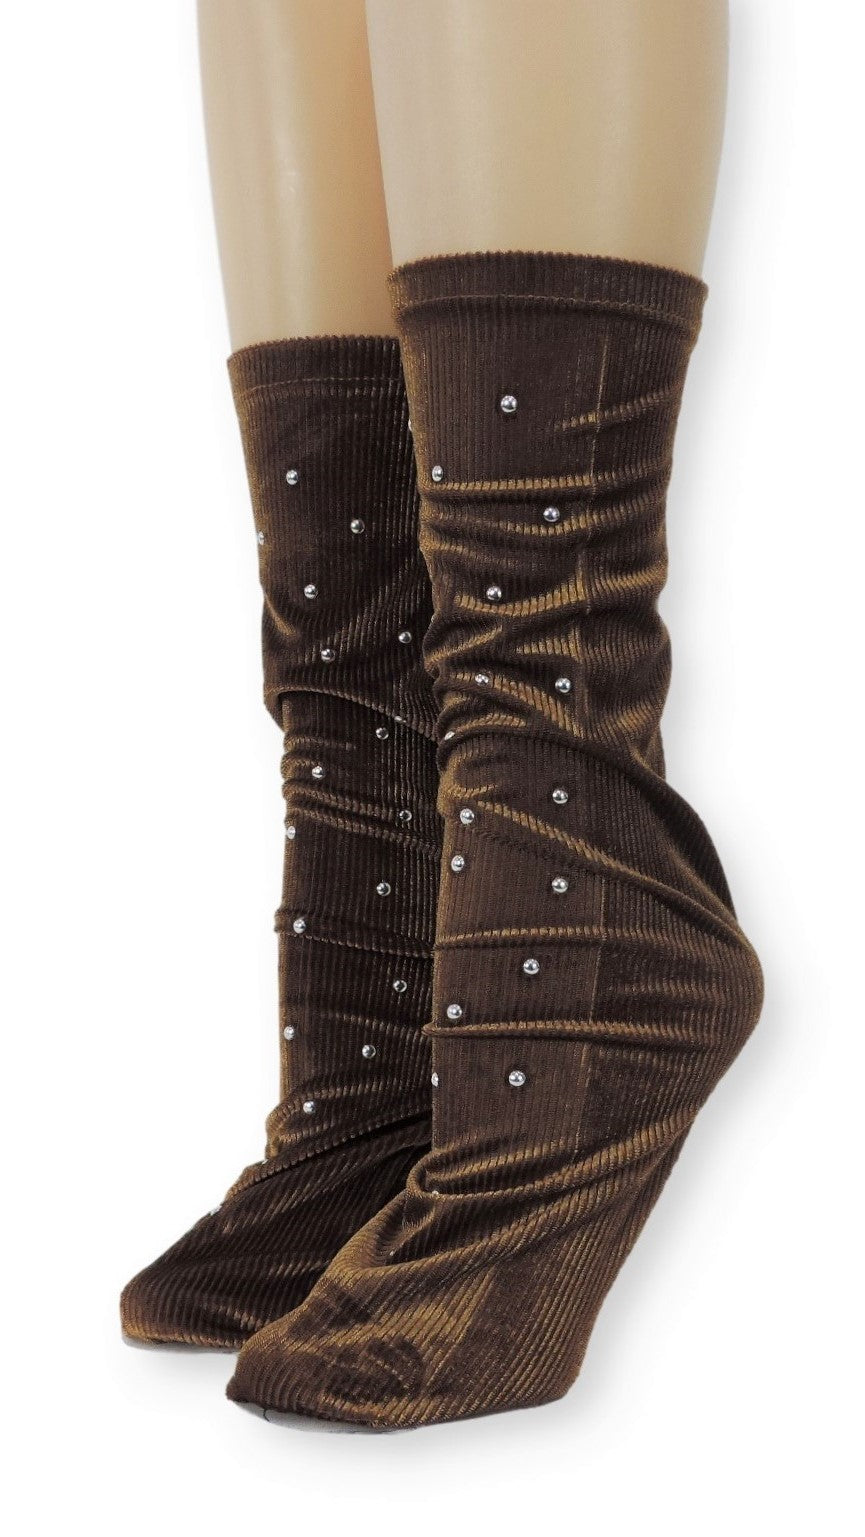 Ribbed Brown Velvet Socks with Beads - Global Trendz Fashion®